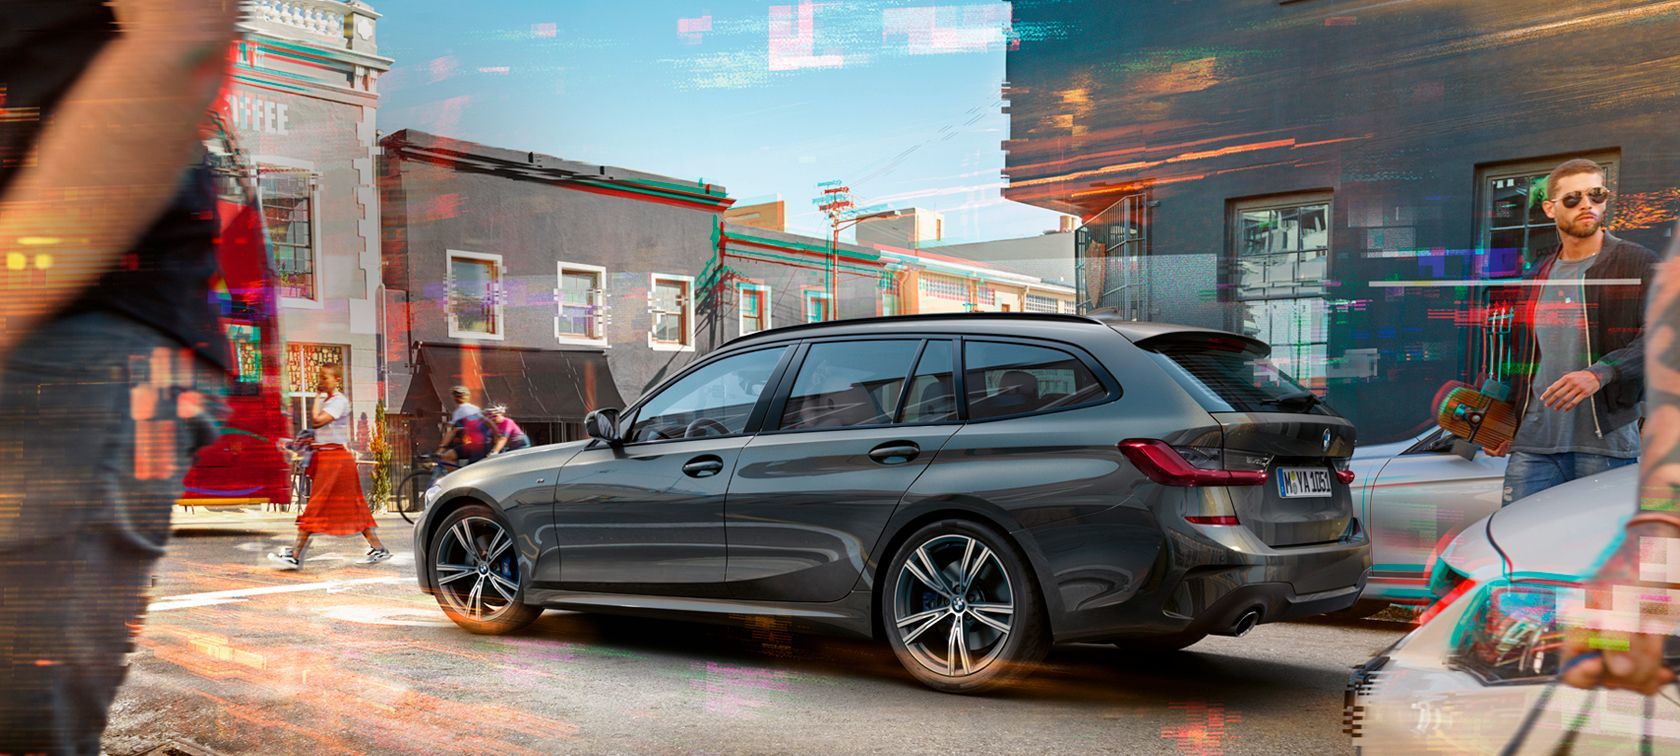 BMW Wagner - BMW 320d Touring Angebot